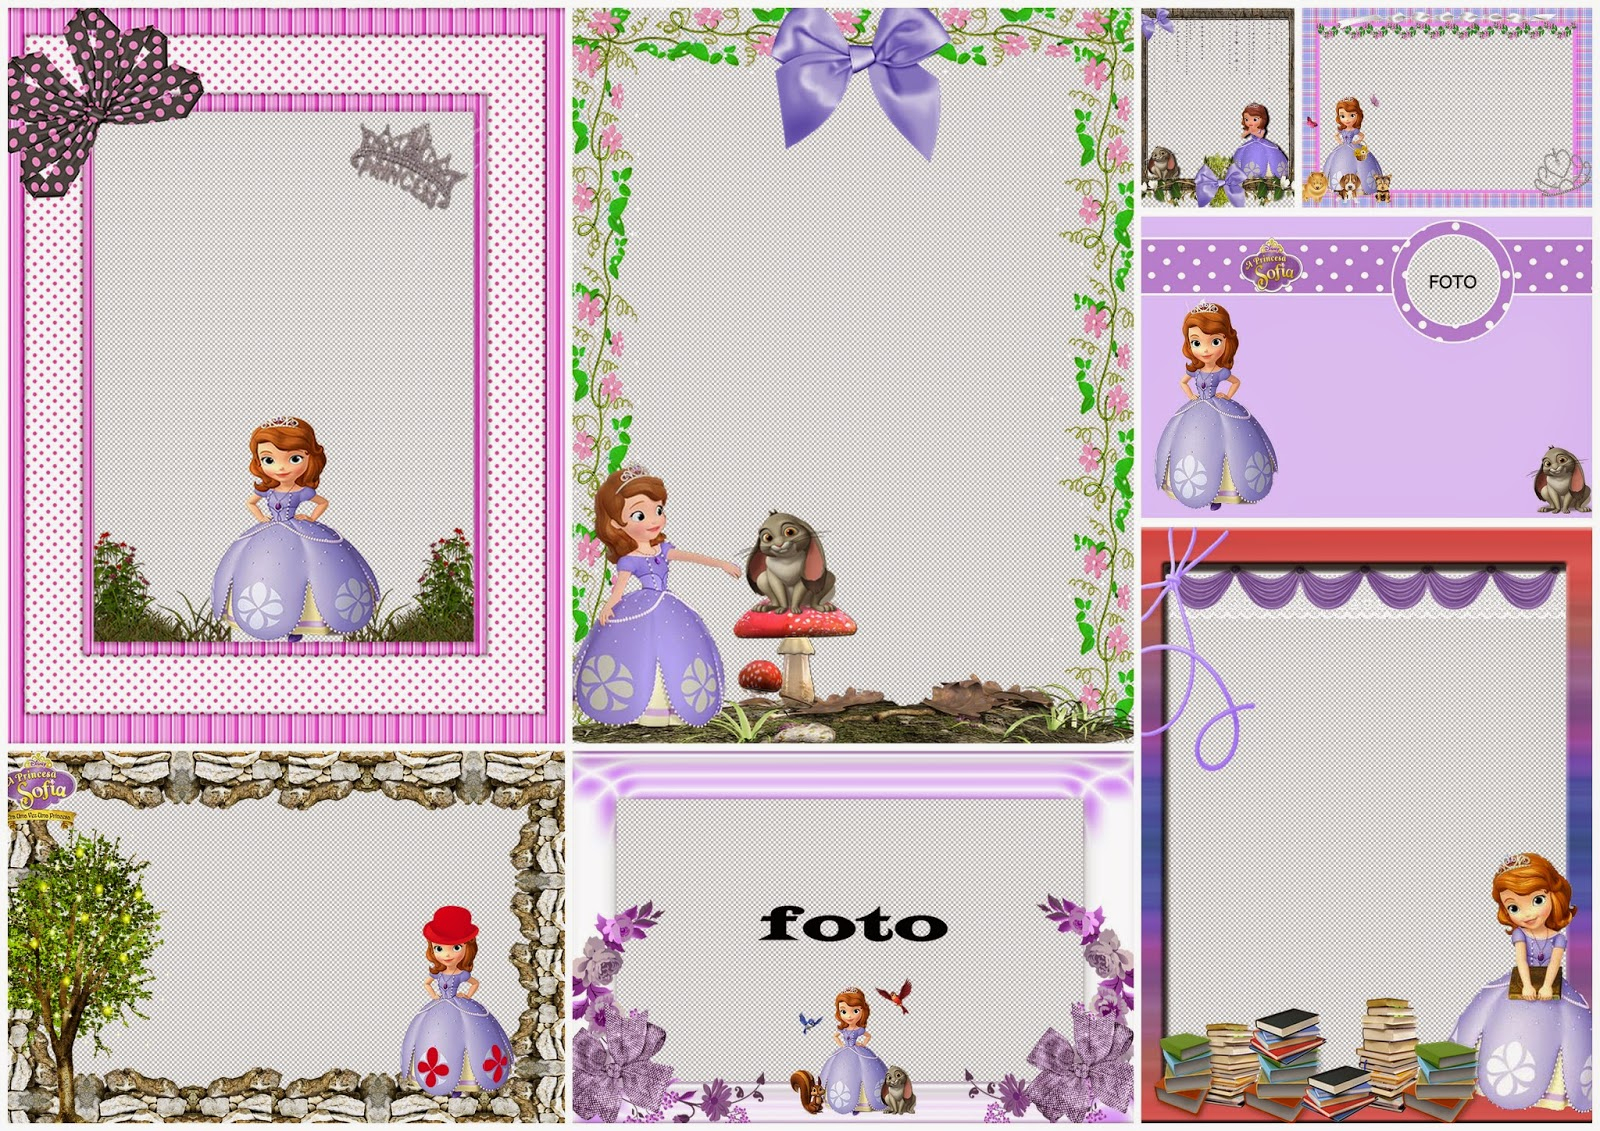 Sofia The First Free Printable Invitations Or Photo Frames. | Oh My - Free Printable Princess Invitation Cards